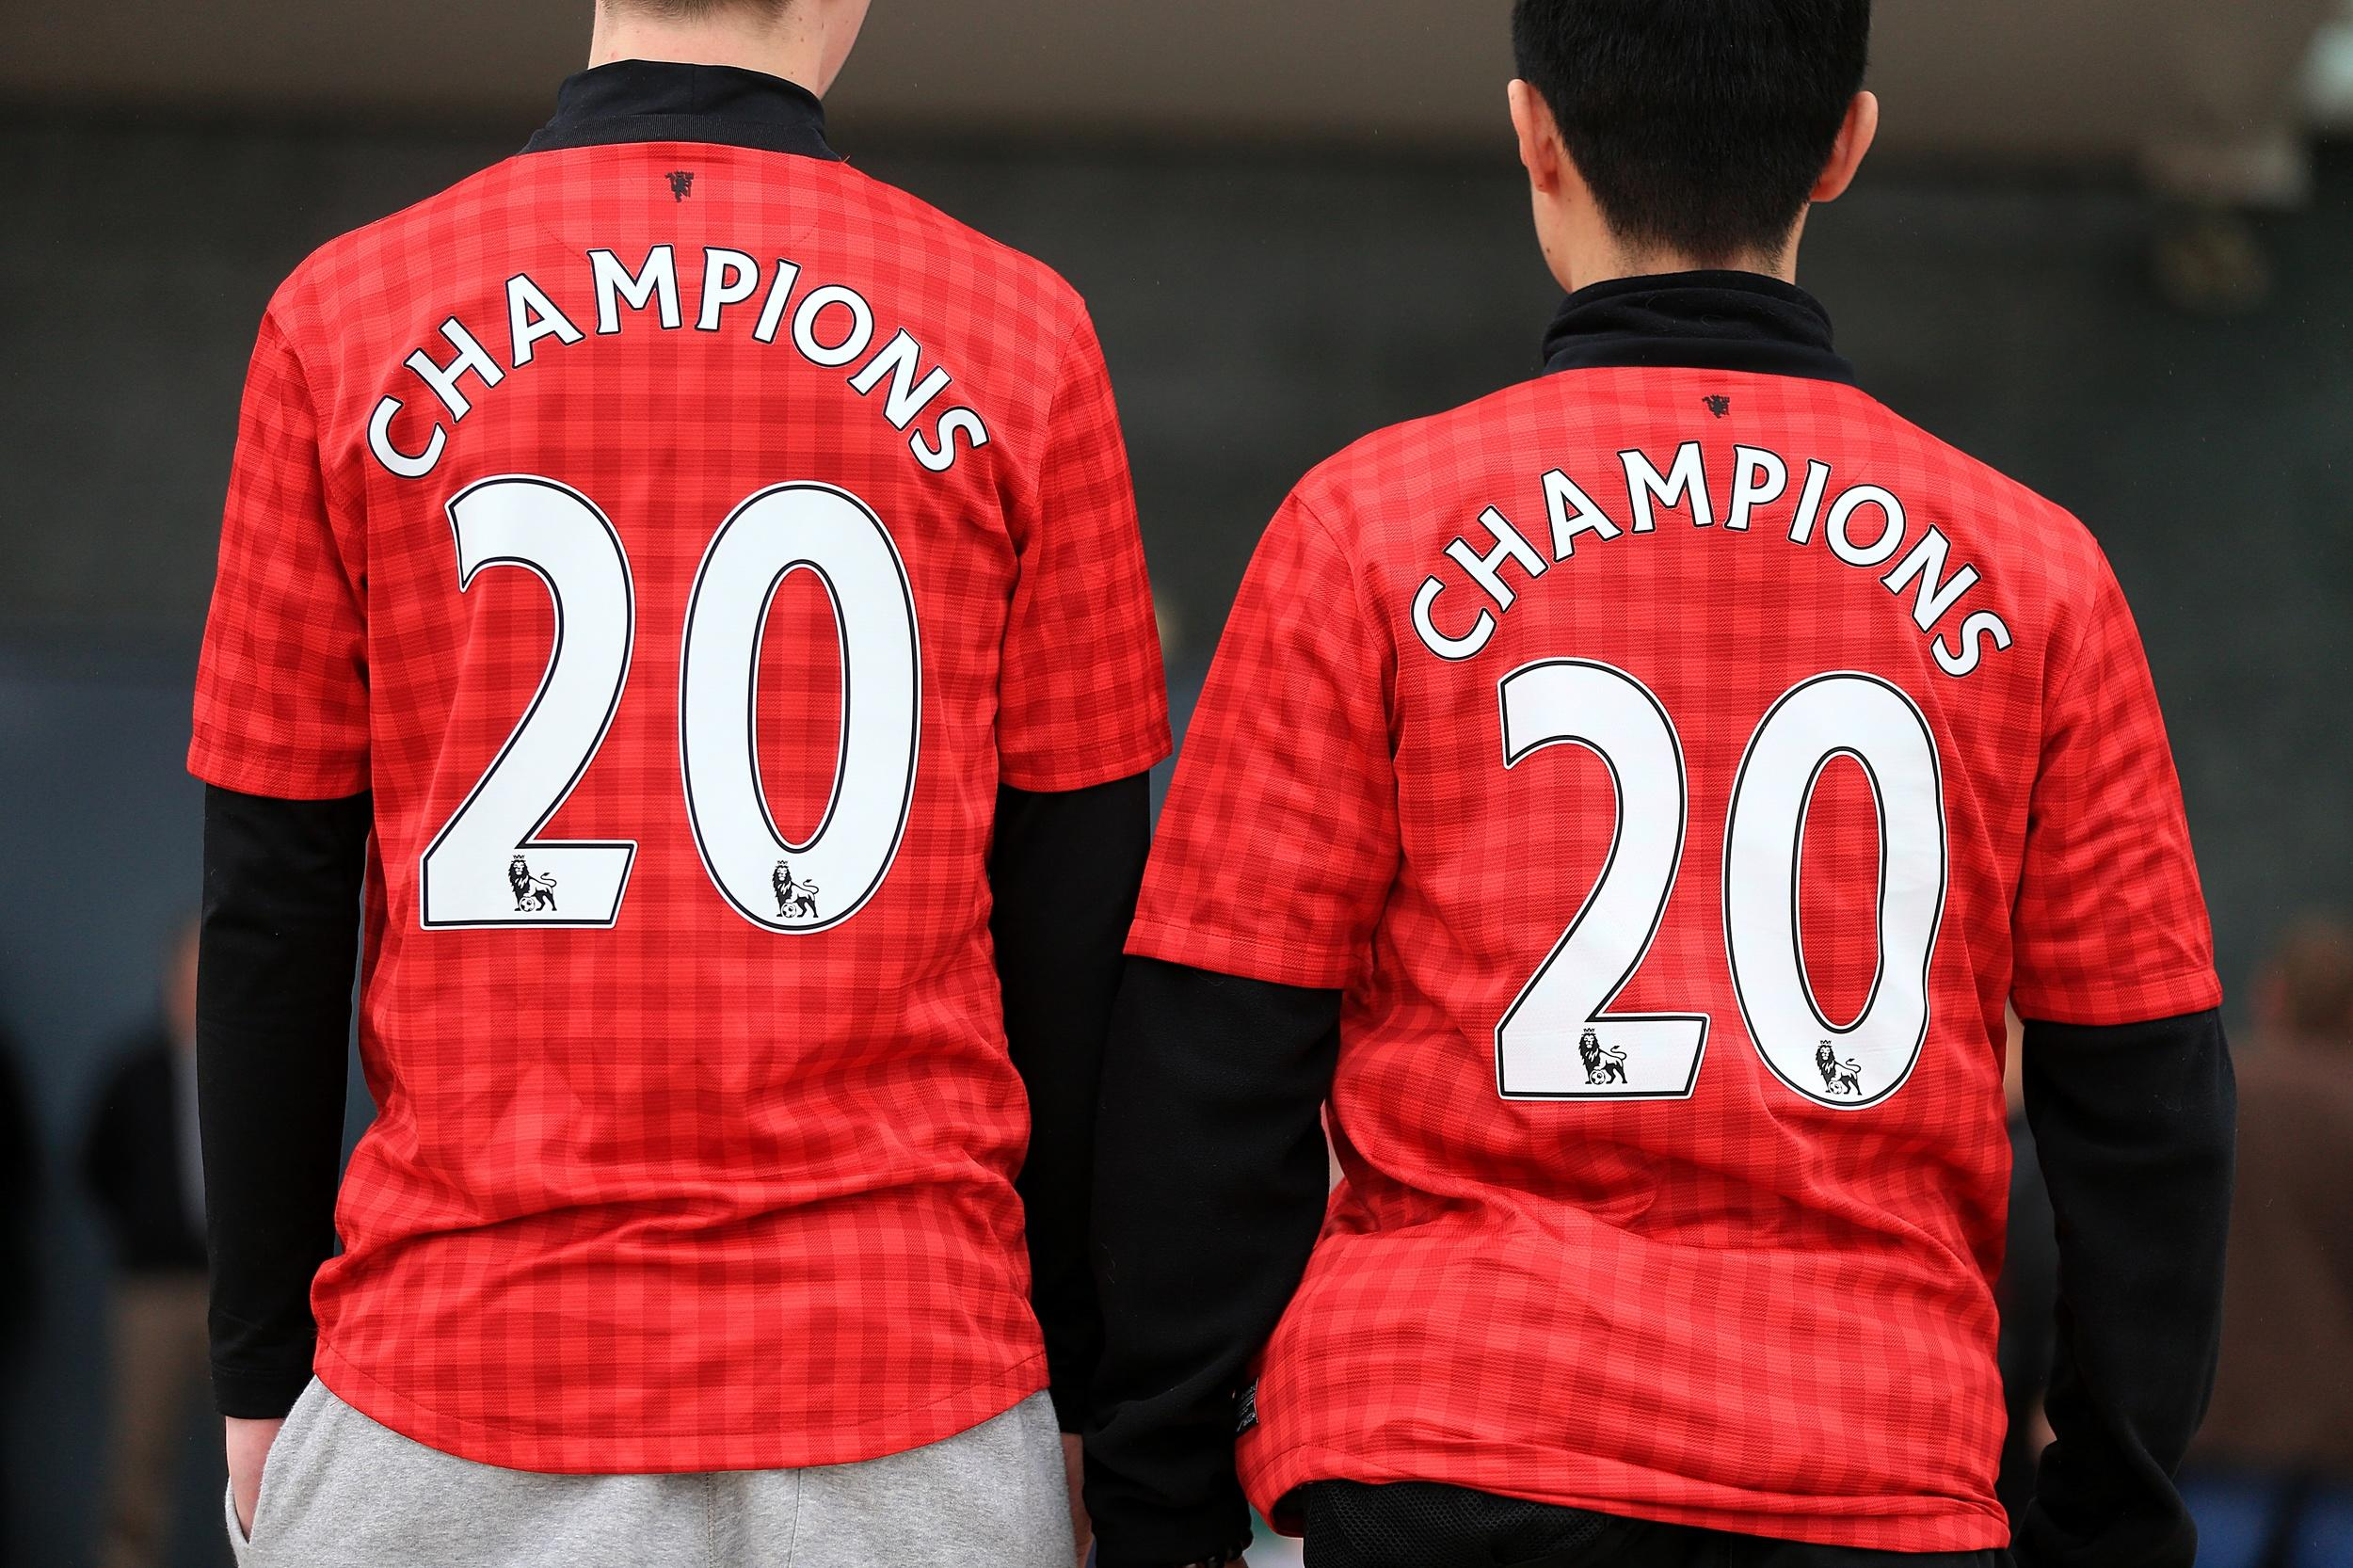 <p>In May, Paul Robert Benson, a 24-year-old from Lurgan, stole groceries from his local supermarket. He might have got away without being identified, if he hadn't decided to wear a Manchester United top with 'Benson 22' written on the back.</p>  <p>The judge sentencing him to 12 months probation said that he might as well have had a neon sign on his back.</p>